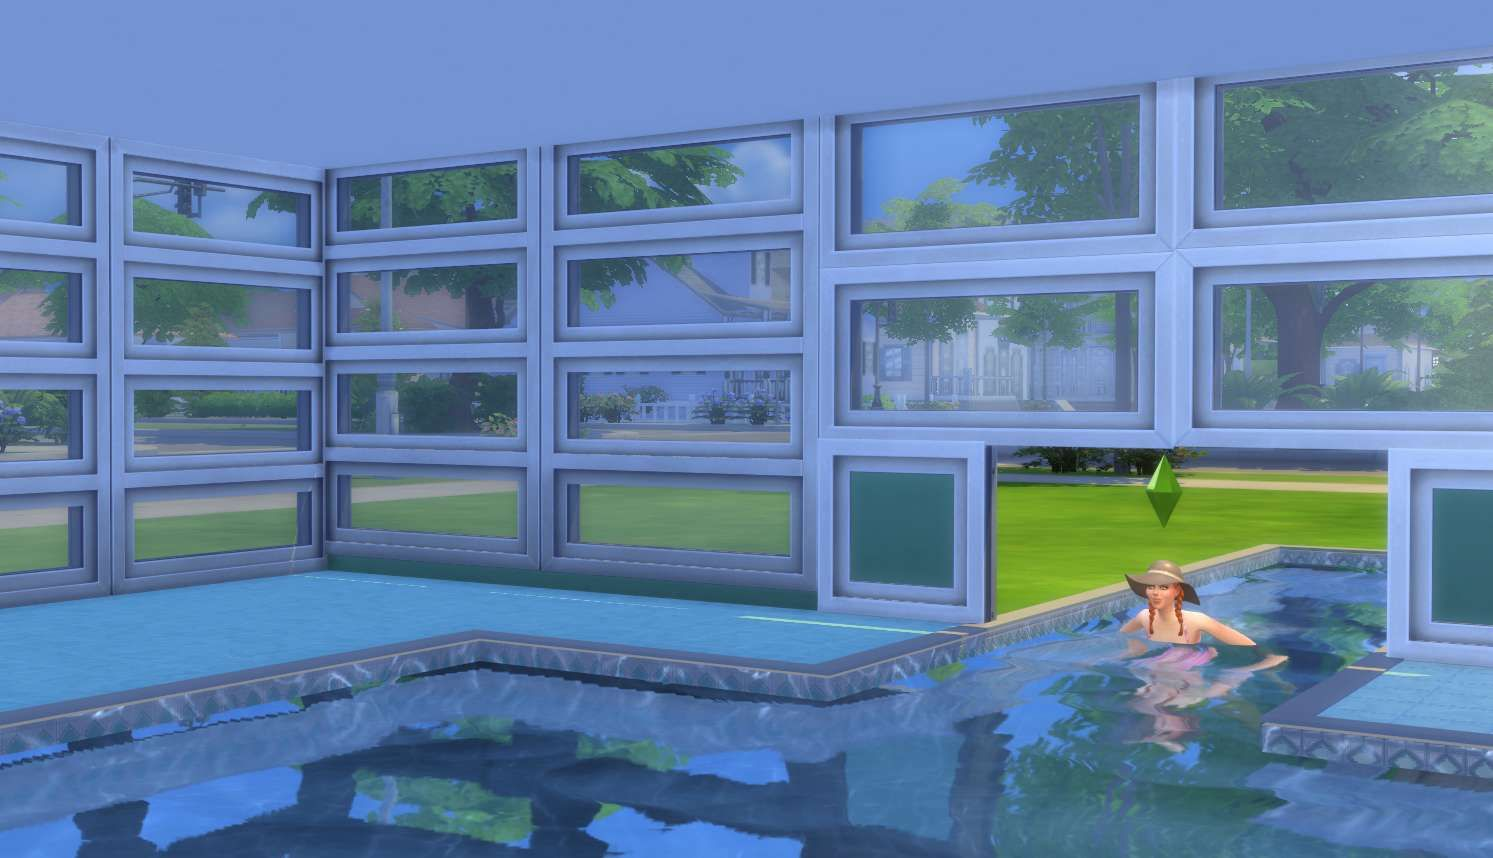 Sims 4 Building How To S Sims Can Then Swim Under The Window Into The House Sims 4 Houses Sims 4 House Plans Sims House Design